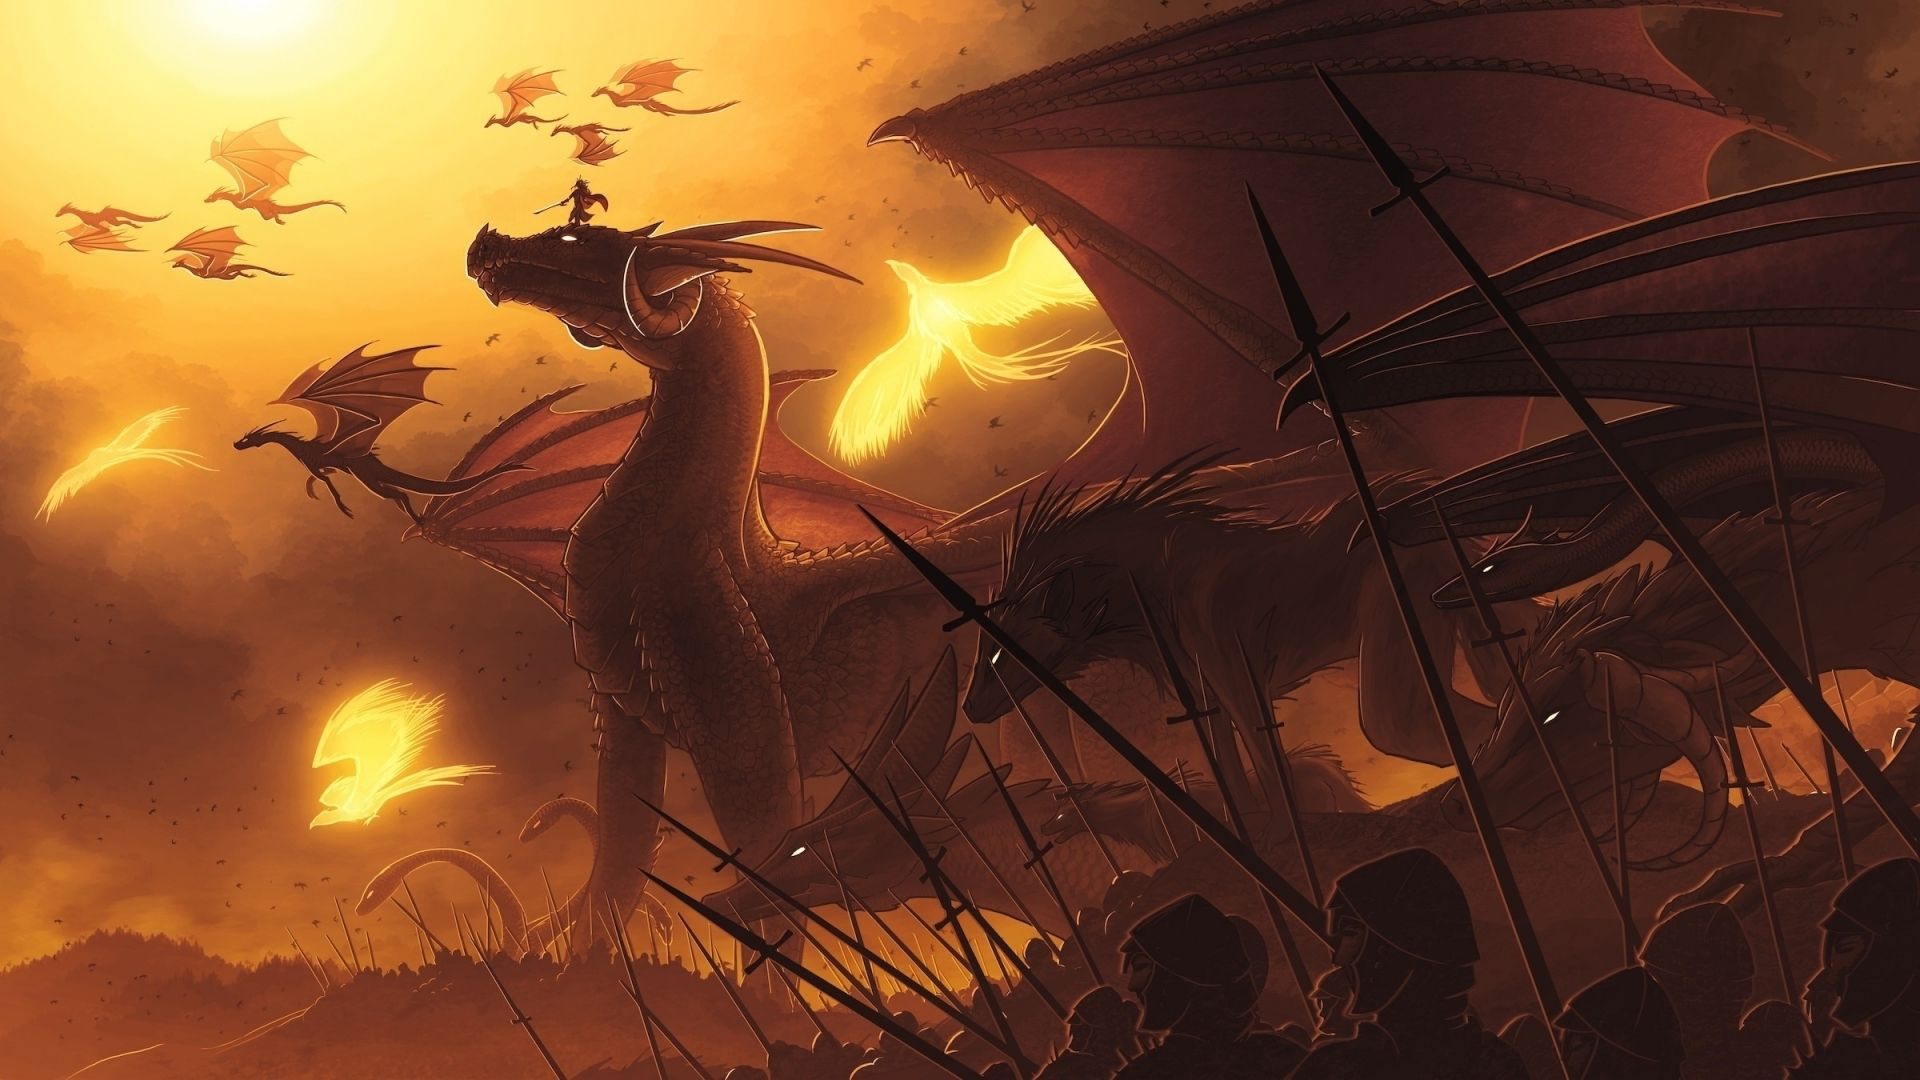 23779 download wallpaper Fantasy, Dragons screensavers and pictures for free